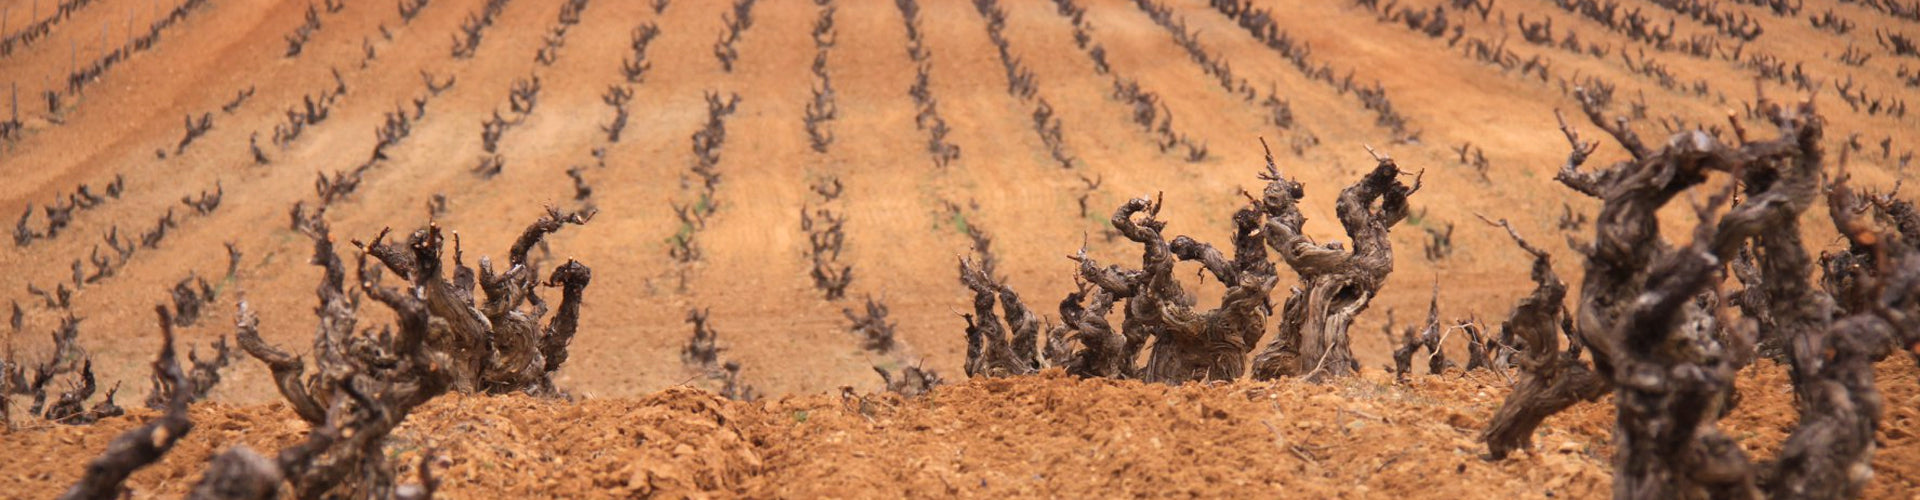 Aalto Vineyards in Spain's Ribera del Duero